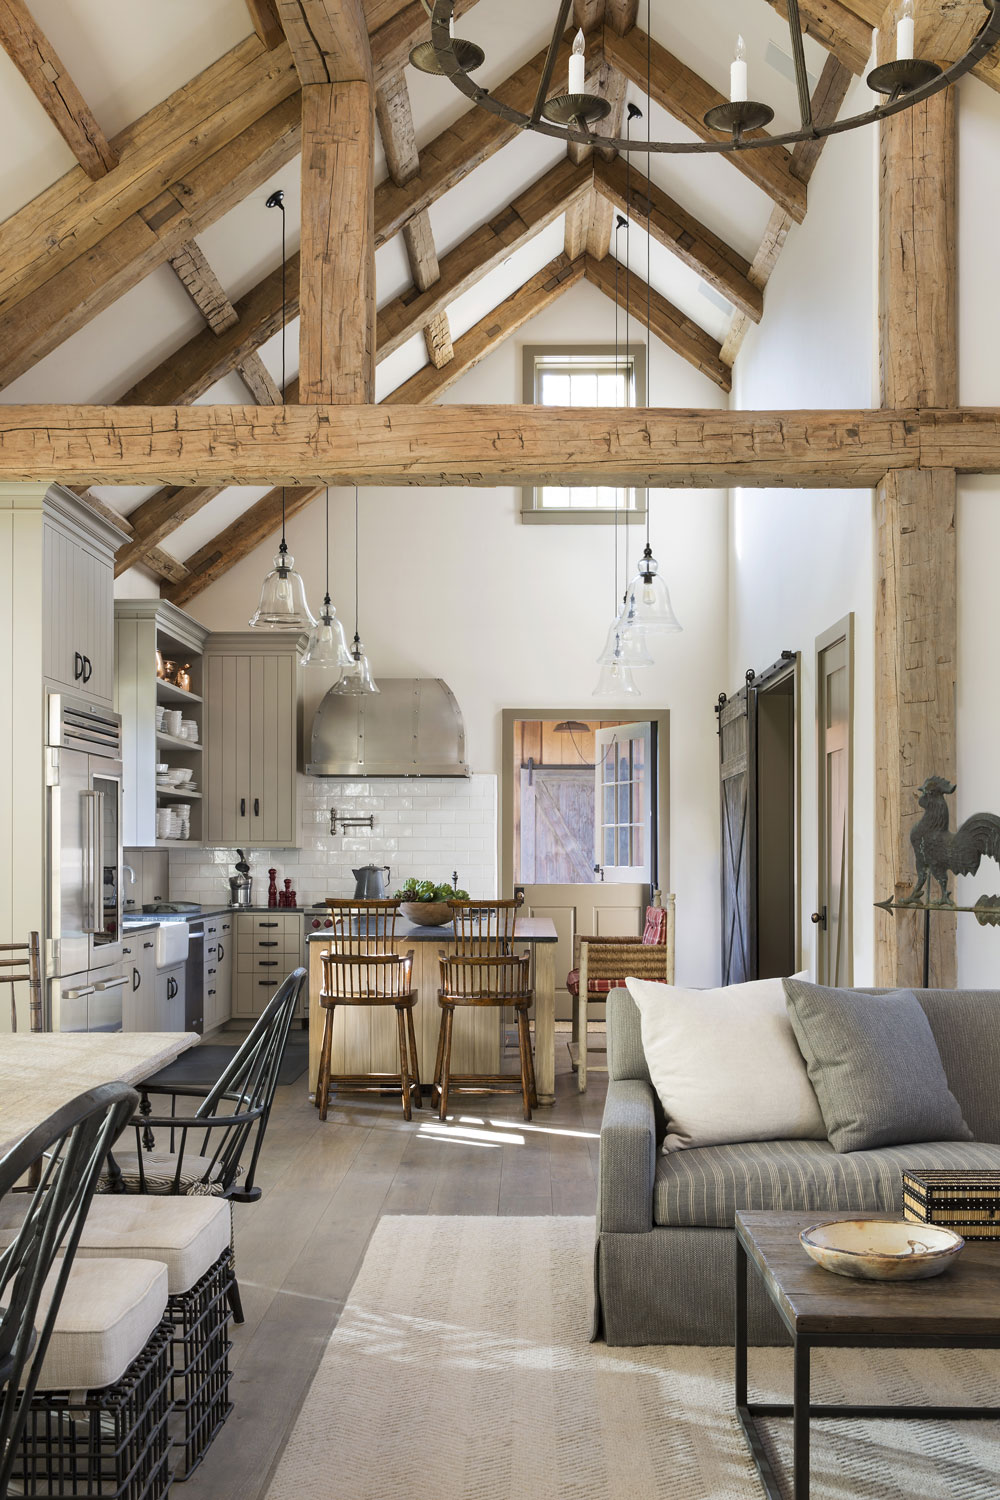 Modern-Farmhouse-Rough-Hewn-Exposed-Beams-Trusses-Premier-General-Contractors.jpg